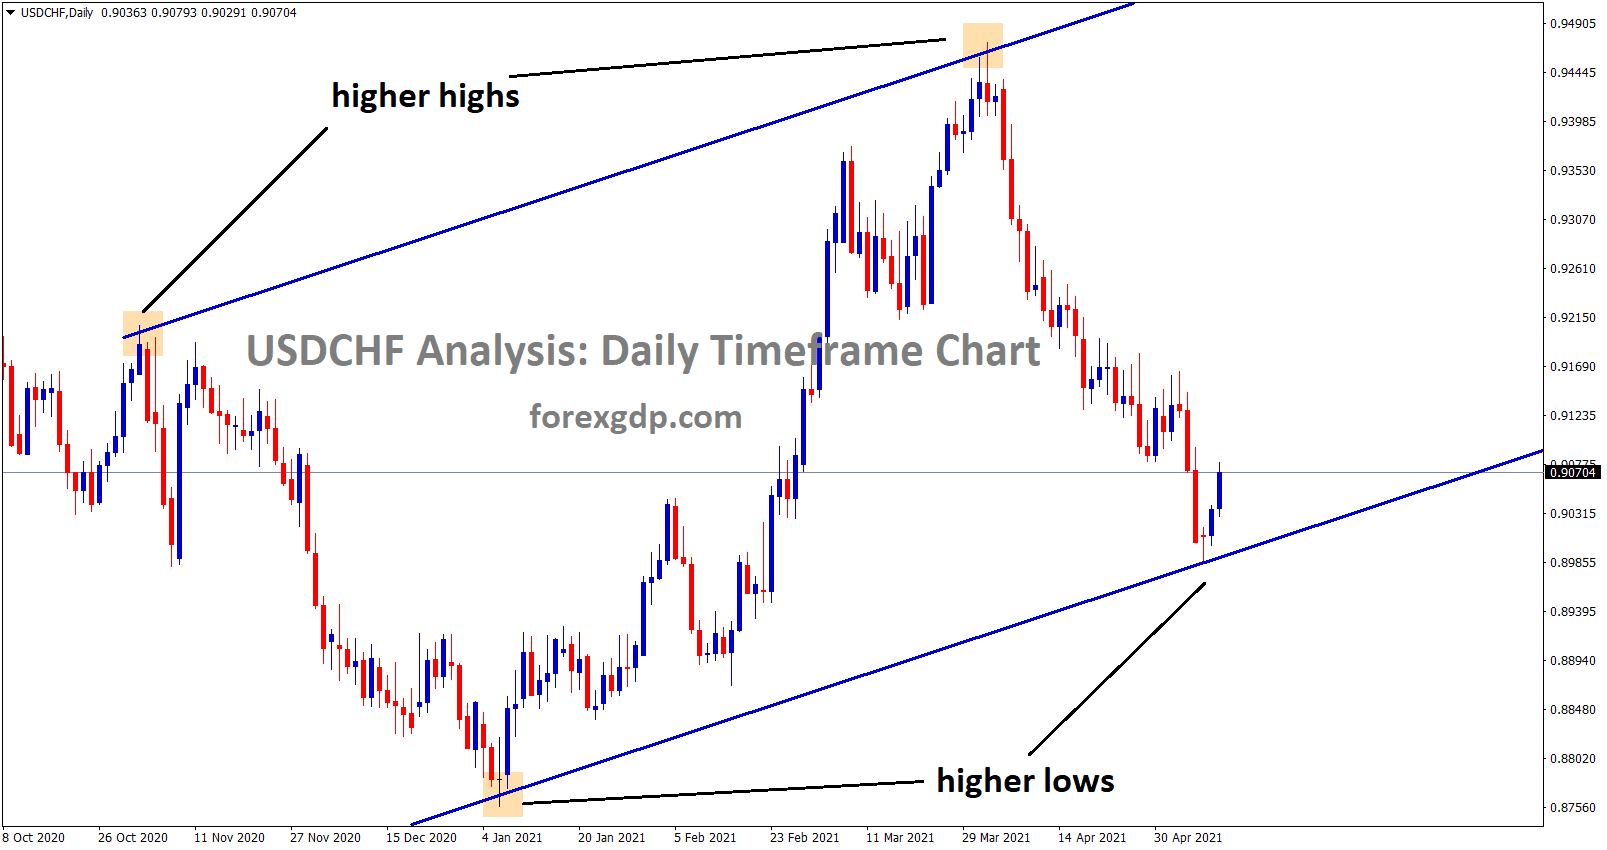 usdchf bouncing back from the higher low zone in ascending channel